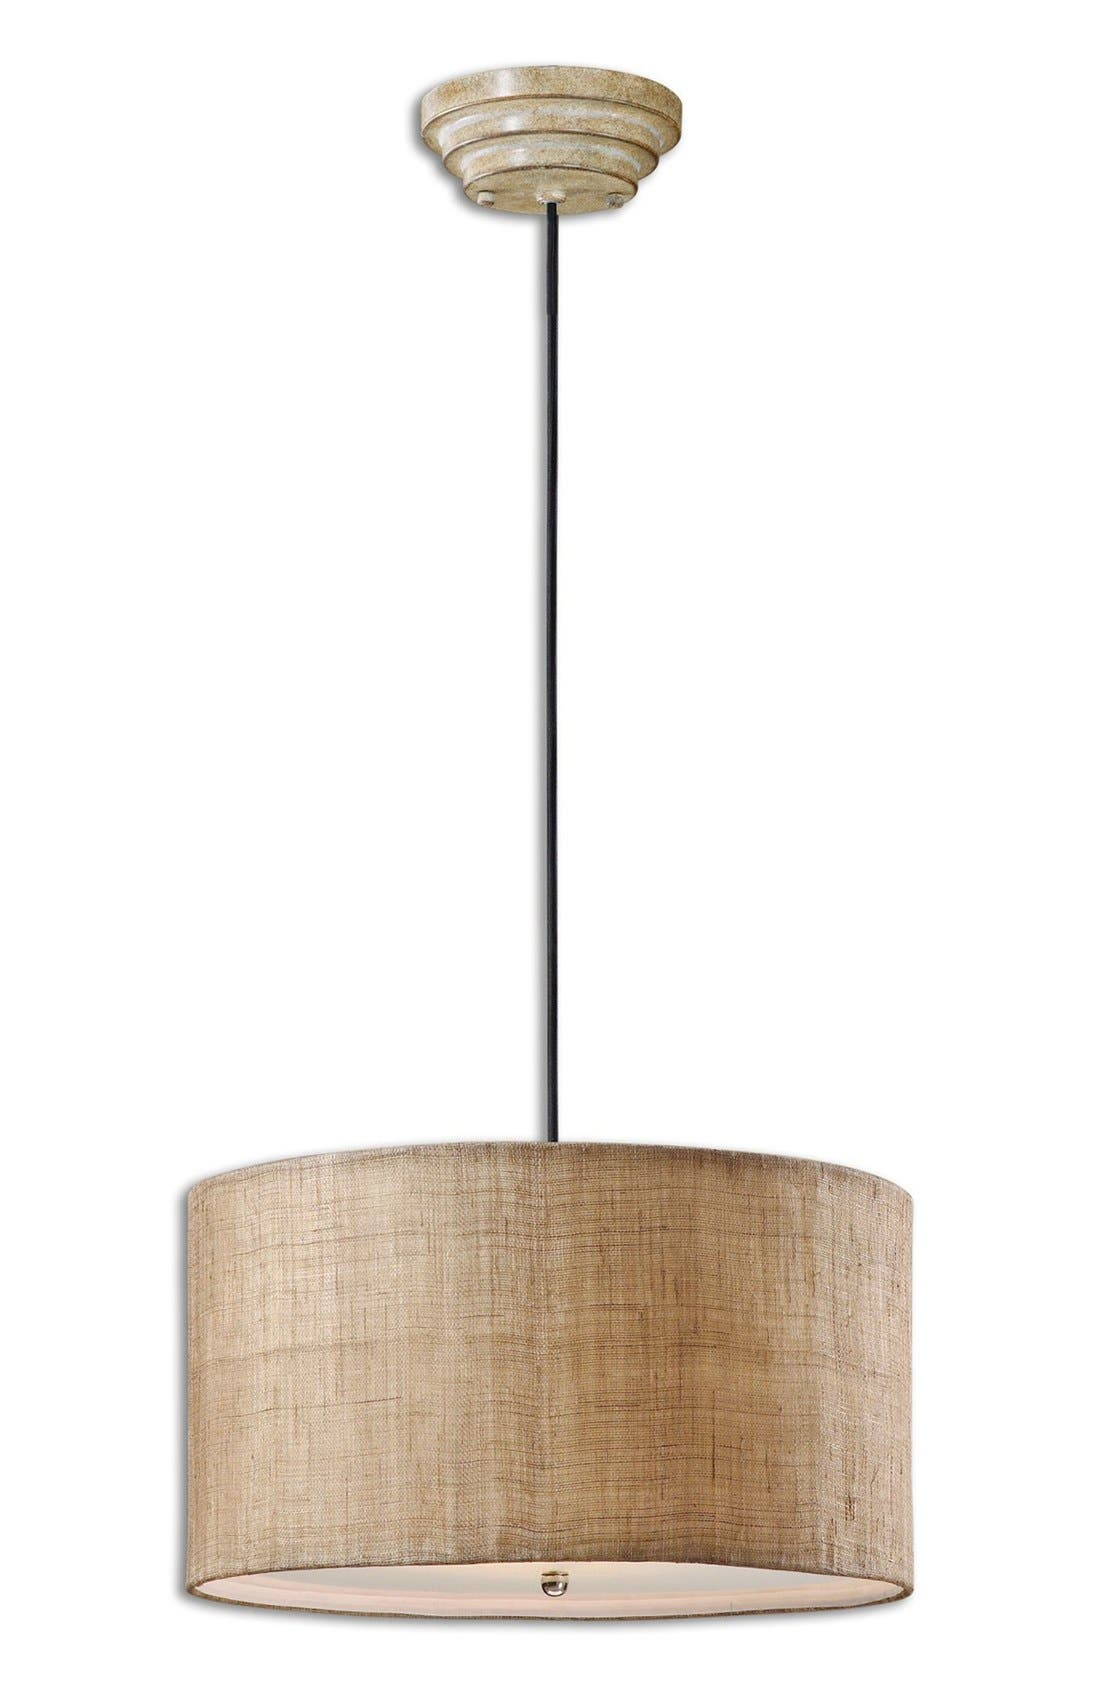 'Dafina' Pendant Light,                             Main thumbnail 1, color,